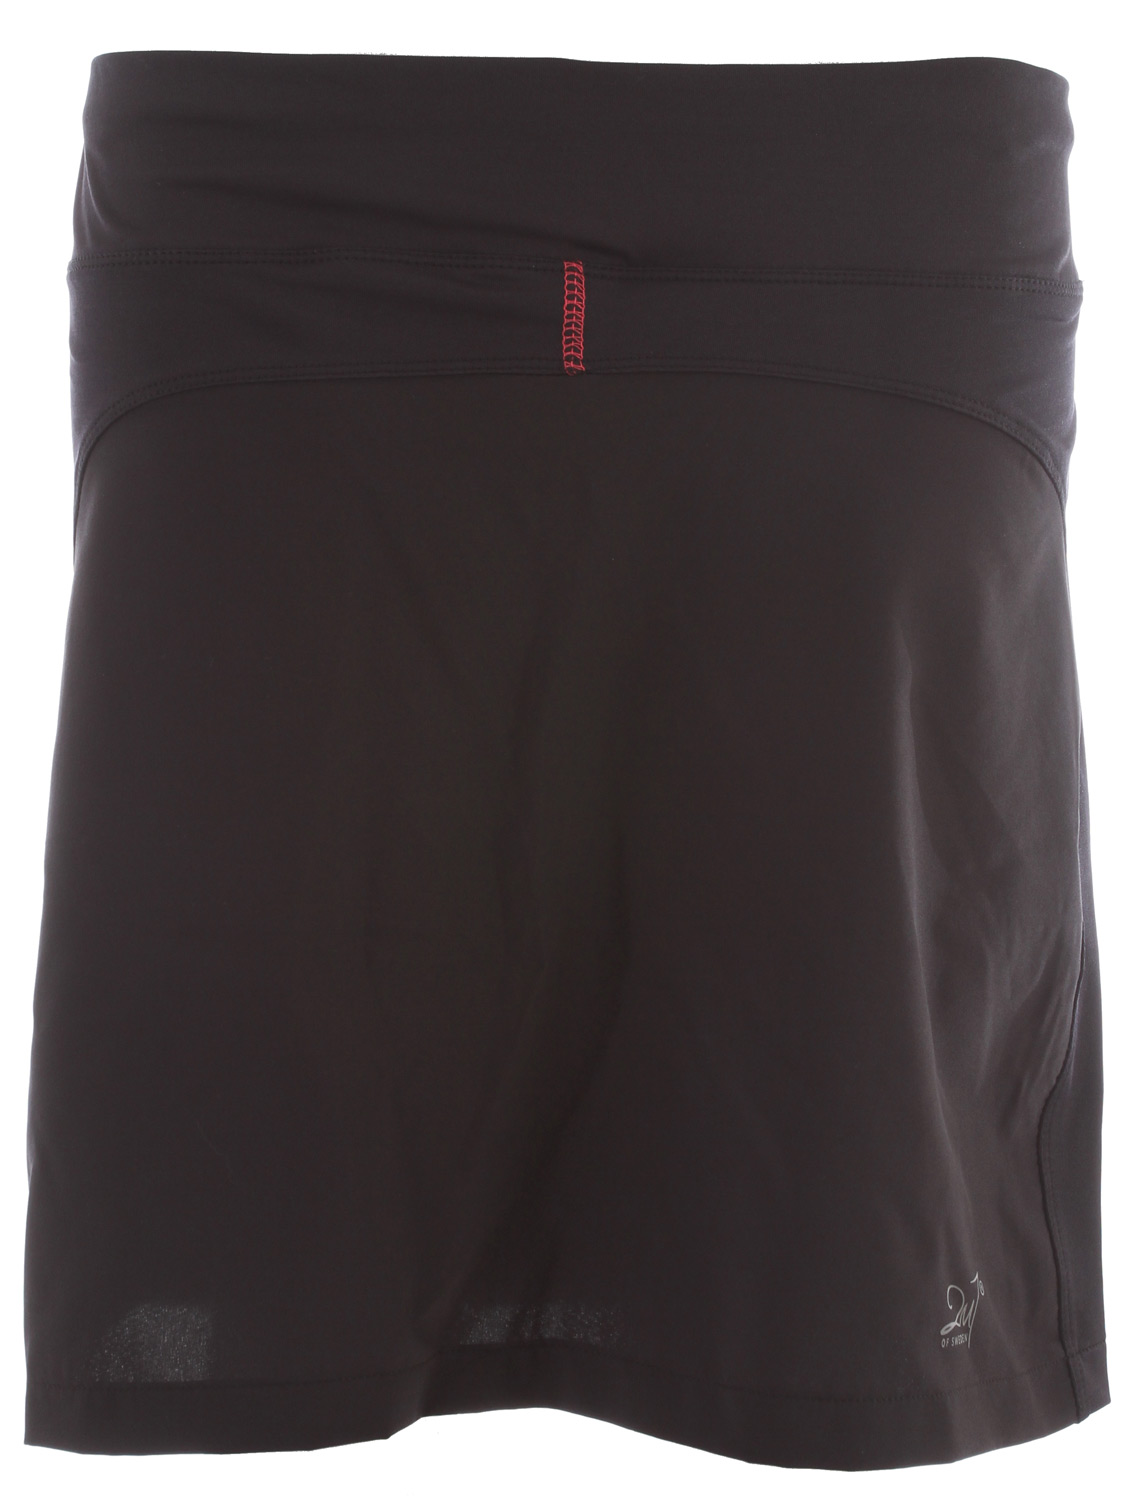 Outdoor skirt for womenKey Features of the 2117 Of Sweden Lysekil Skirt: Skirt with underpants 4-way stretch - $15.95